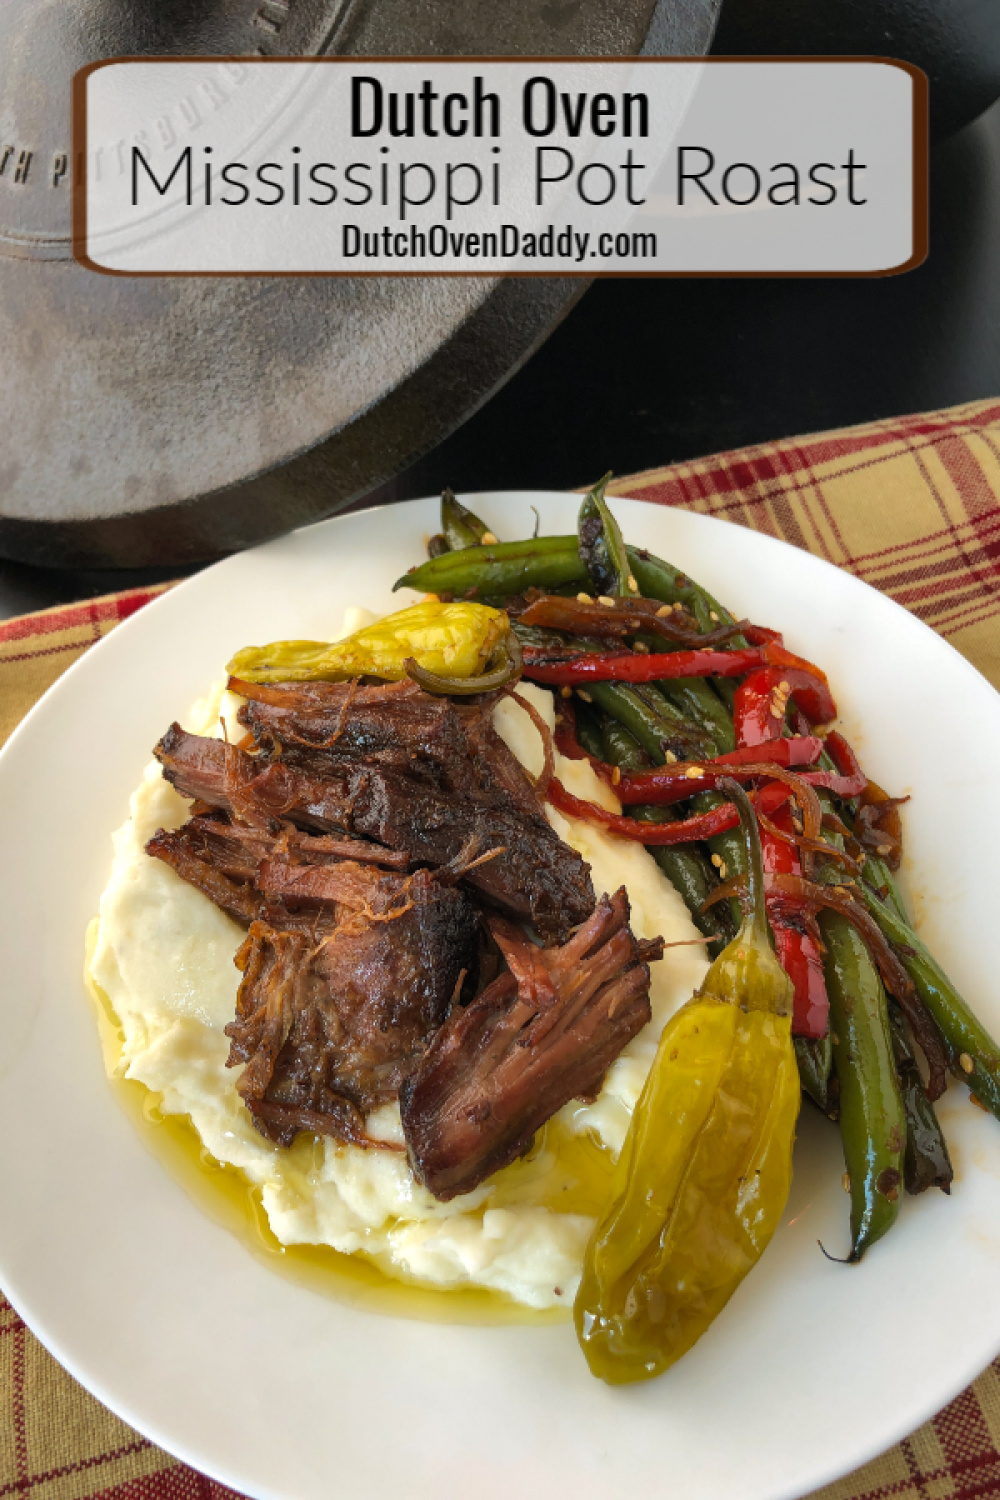 Plated pot roast over mashed potatoes with a side of green beans. Dutch oven in the back ground.